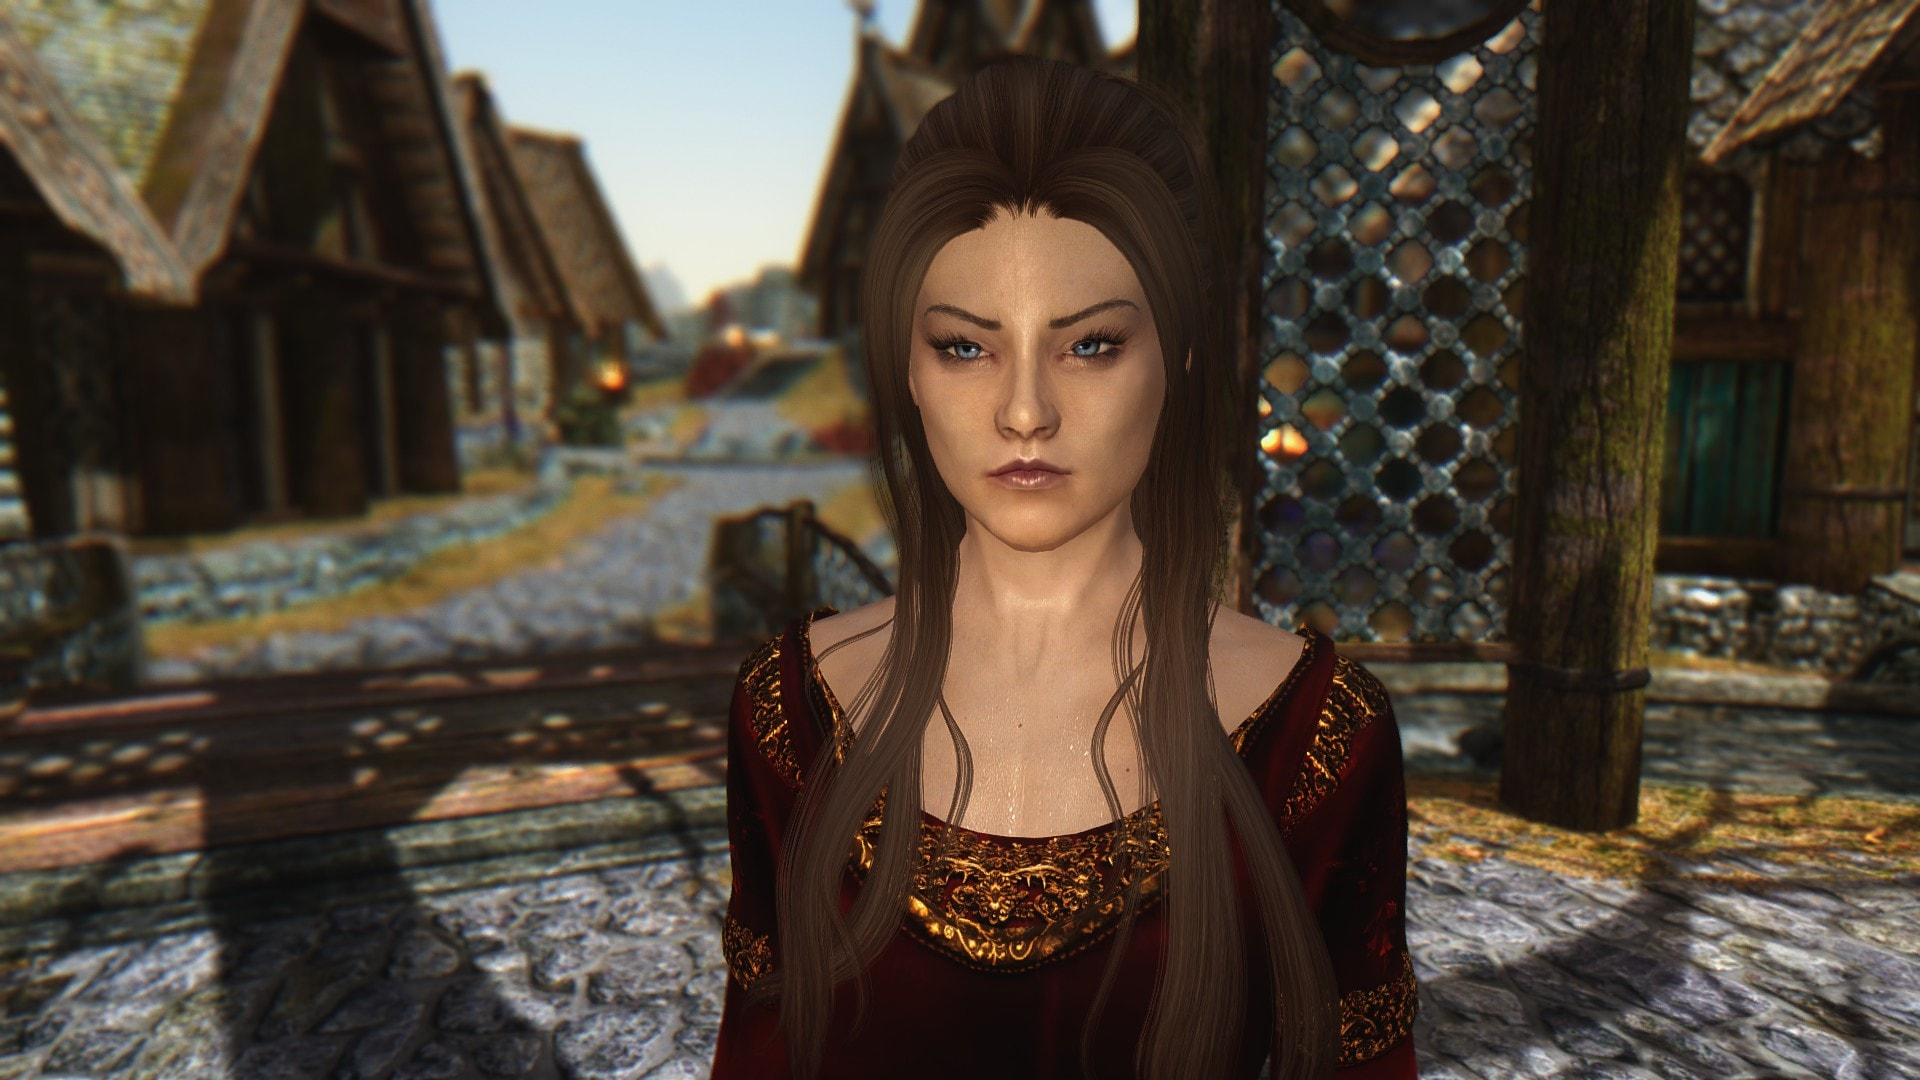 Margaery Tyrell Game of Thrones Preset | Пресет Маргери Тирелл из Игры Престолов